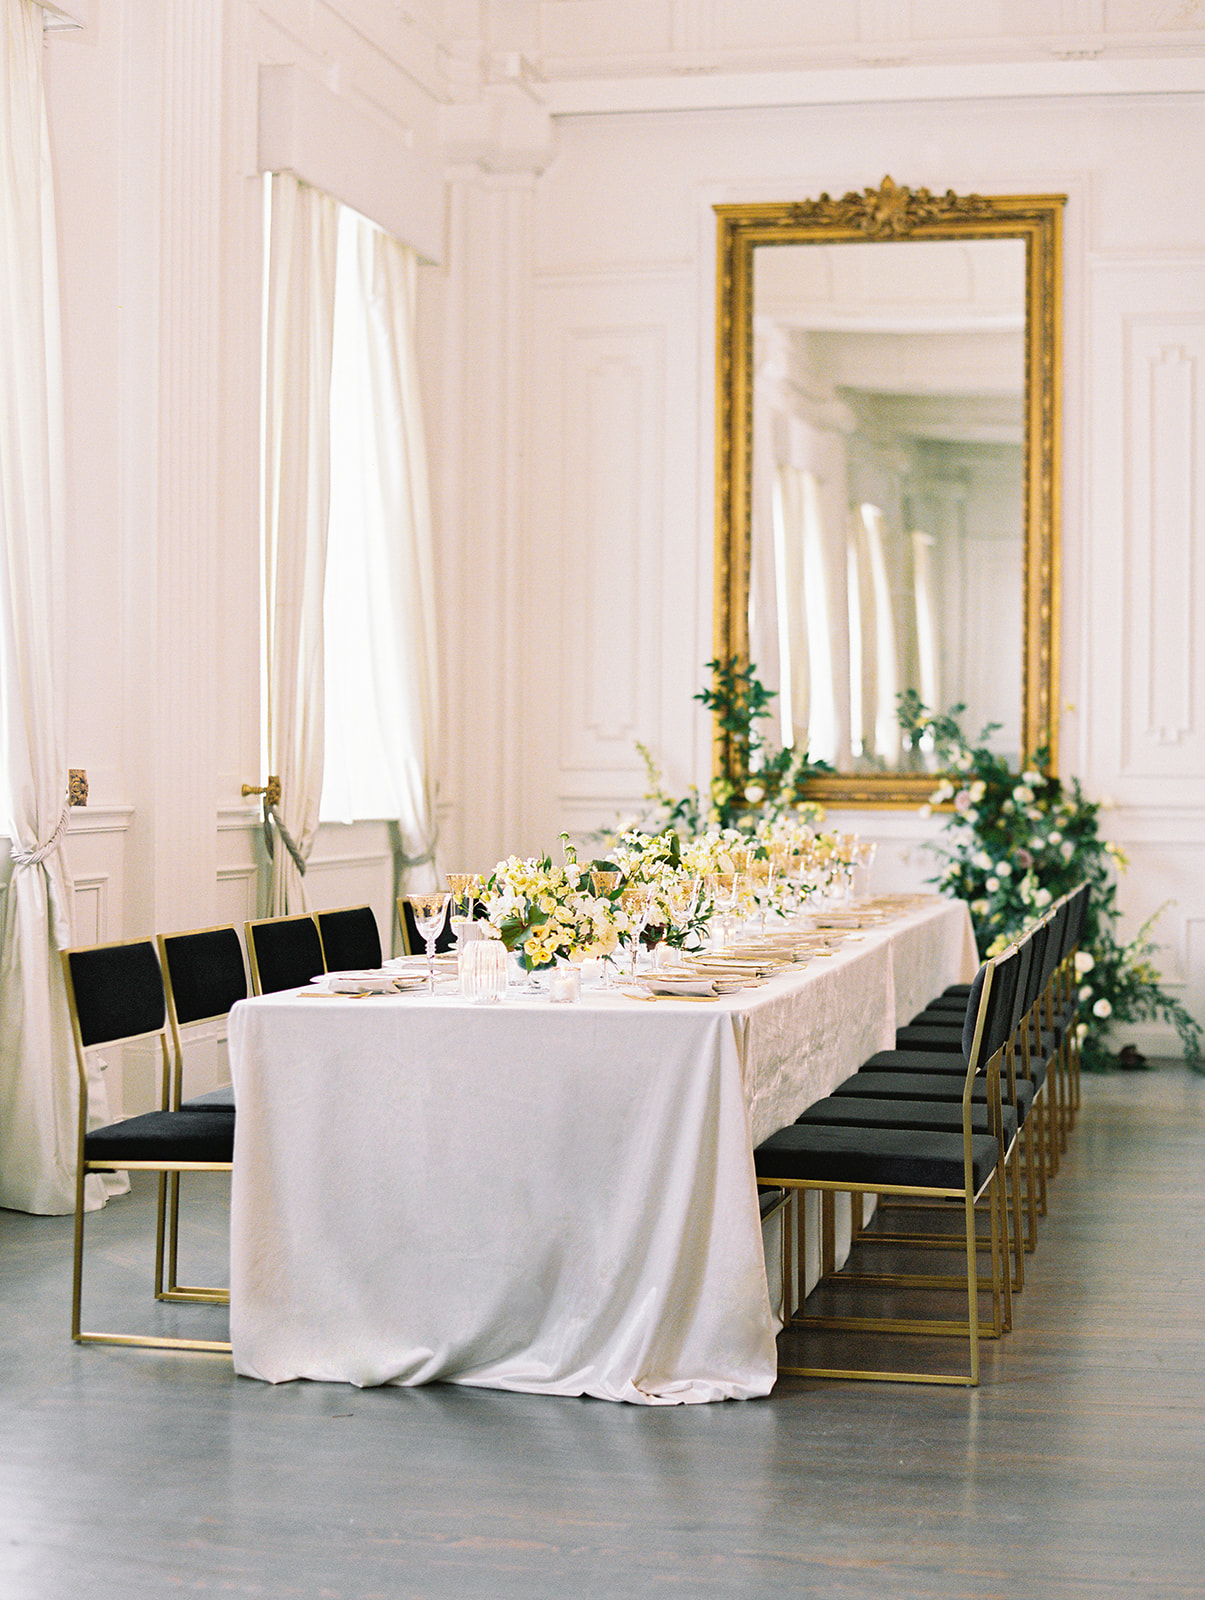 Modern black and gold wedding table chairs from Posh Couture Rentals